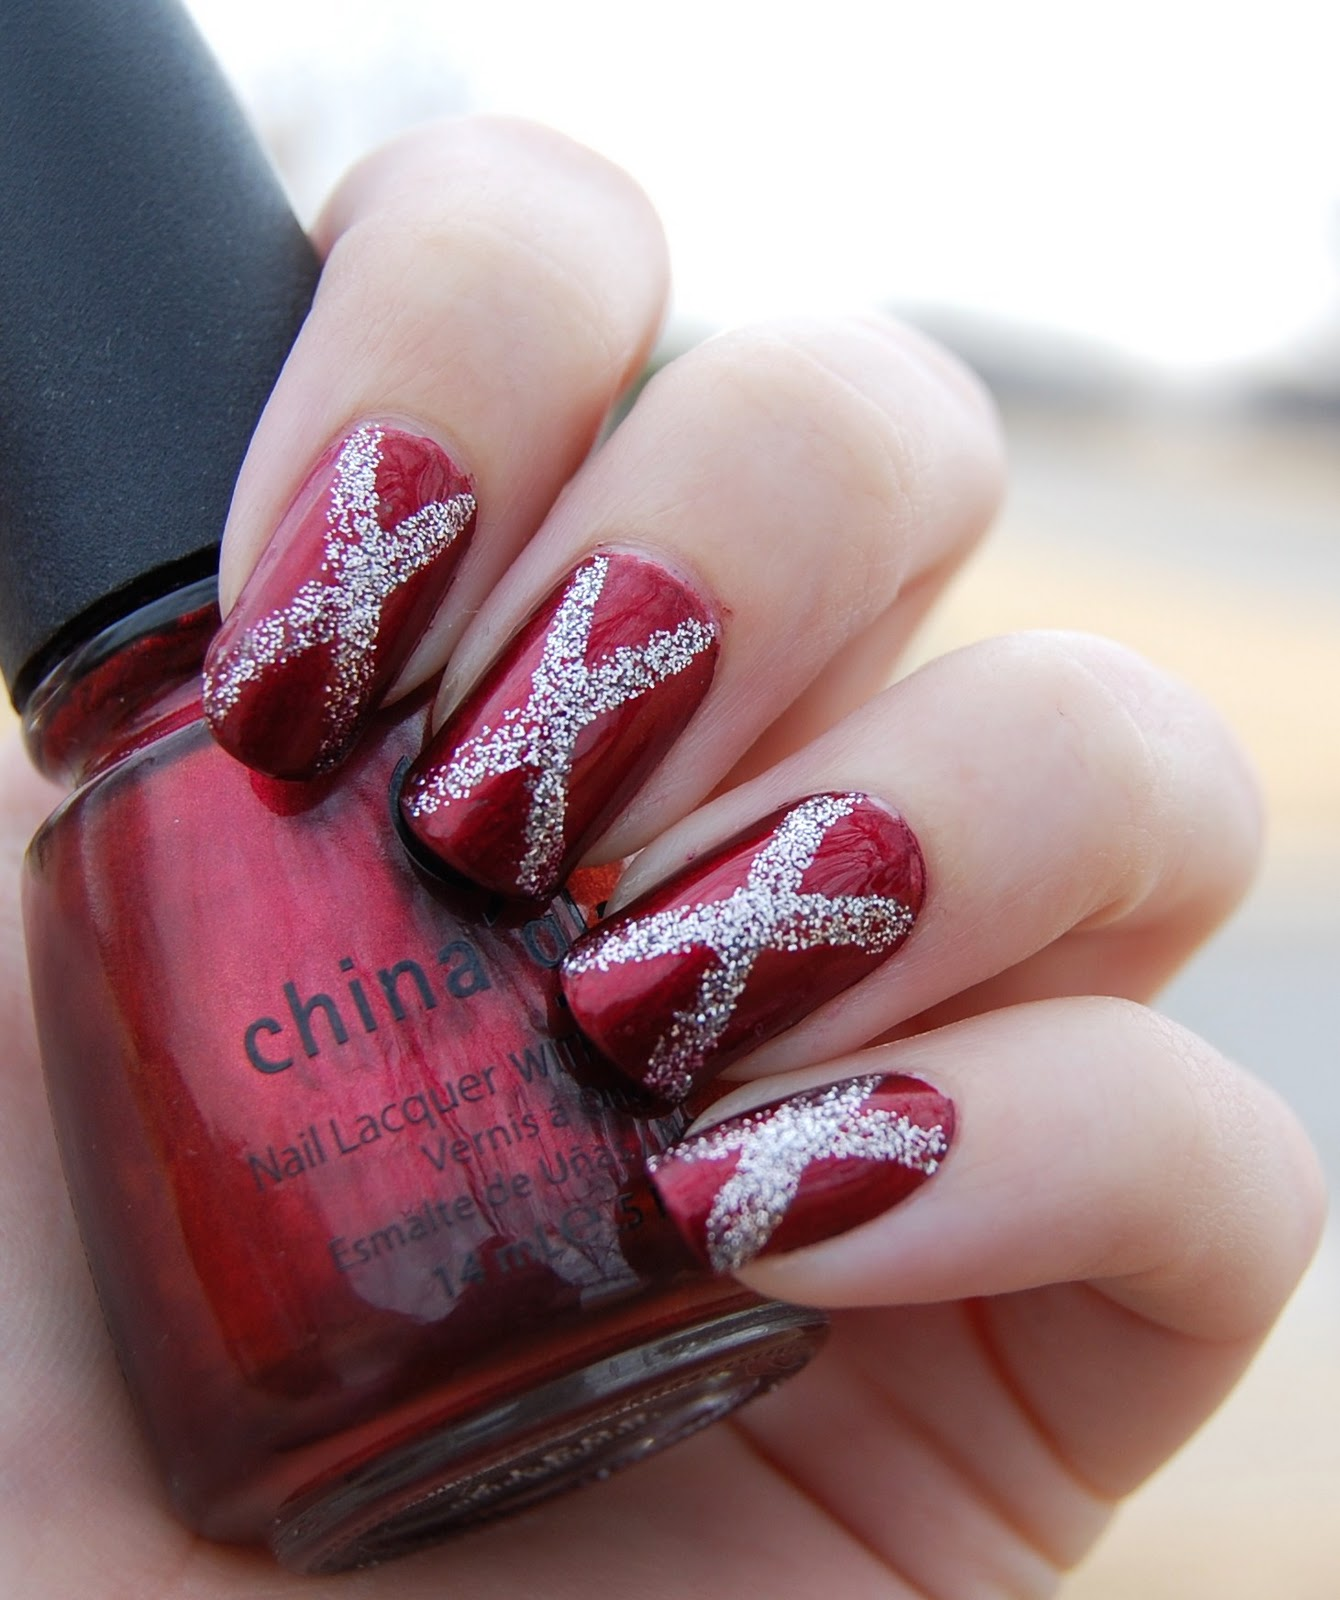 Lacquer Love: Happy Holidays! (Red and Silver Nail Art)